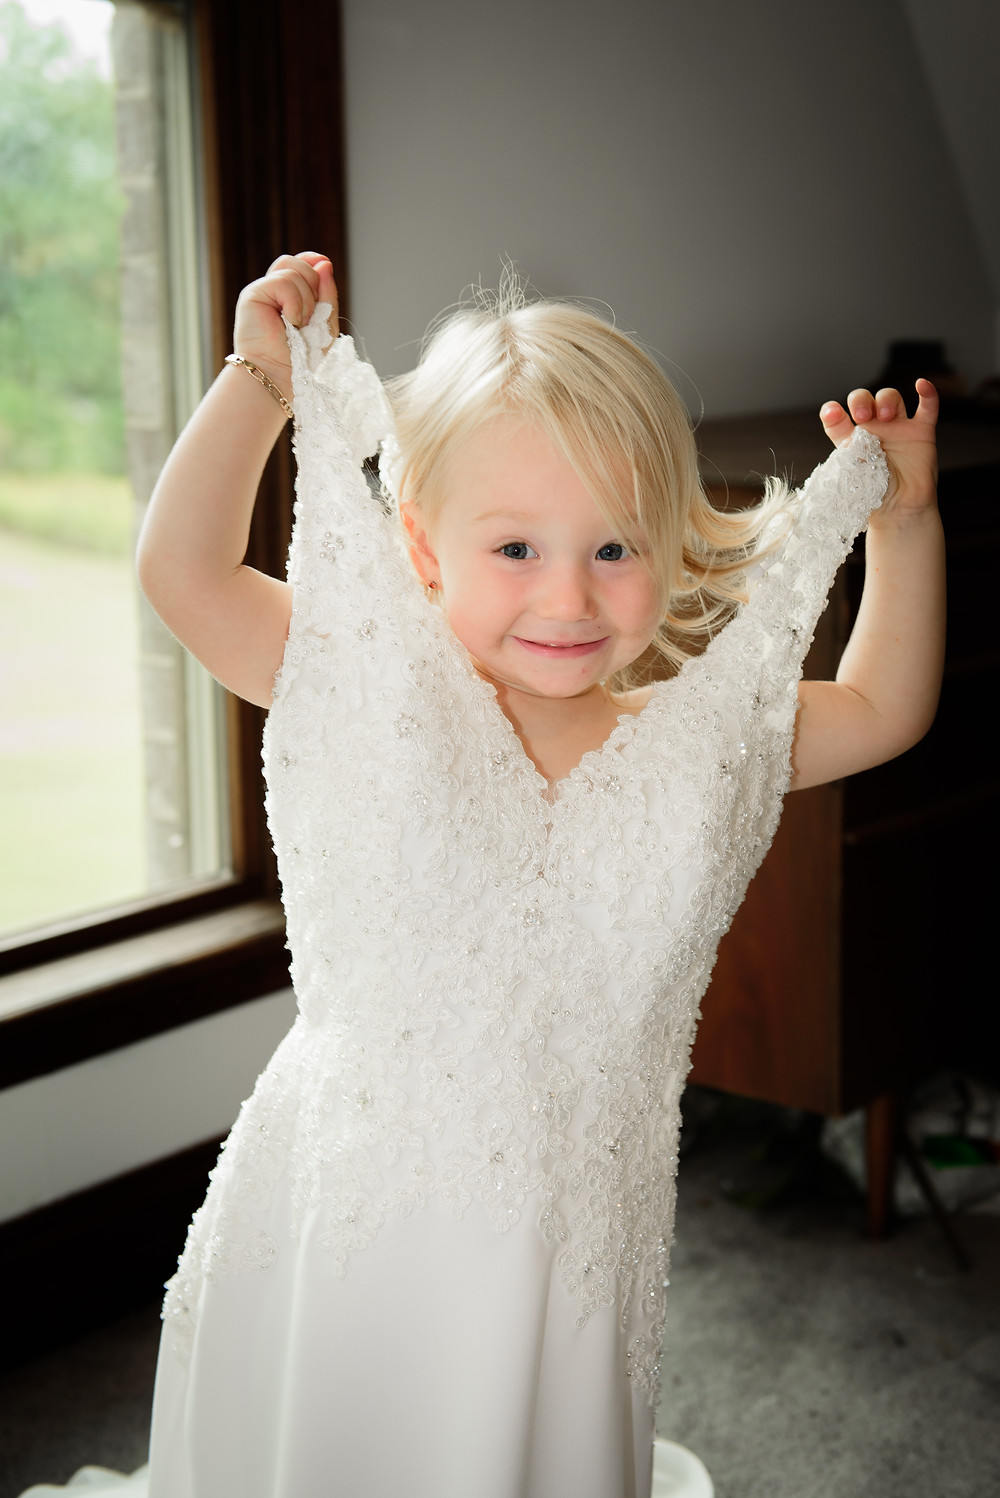 A very happy girl in her mom's wedding dress.